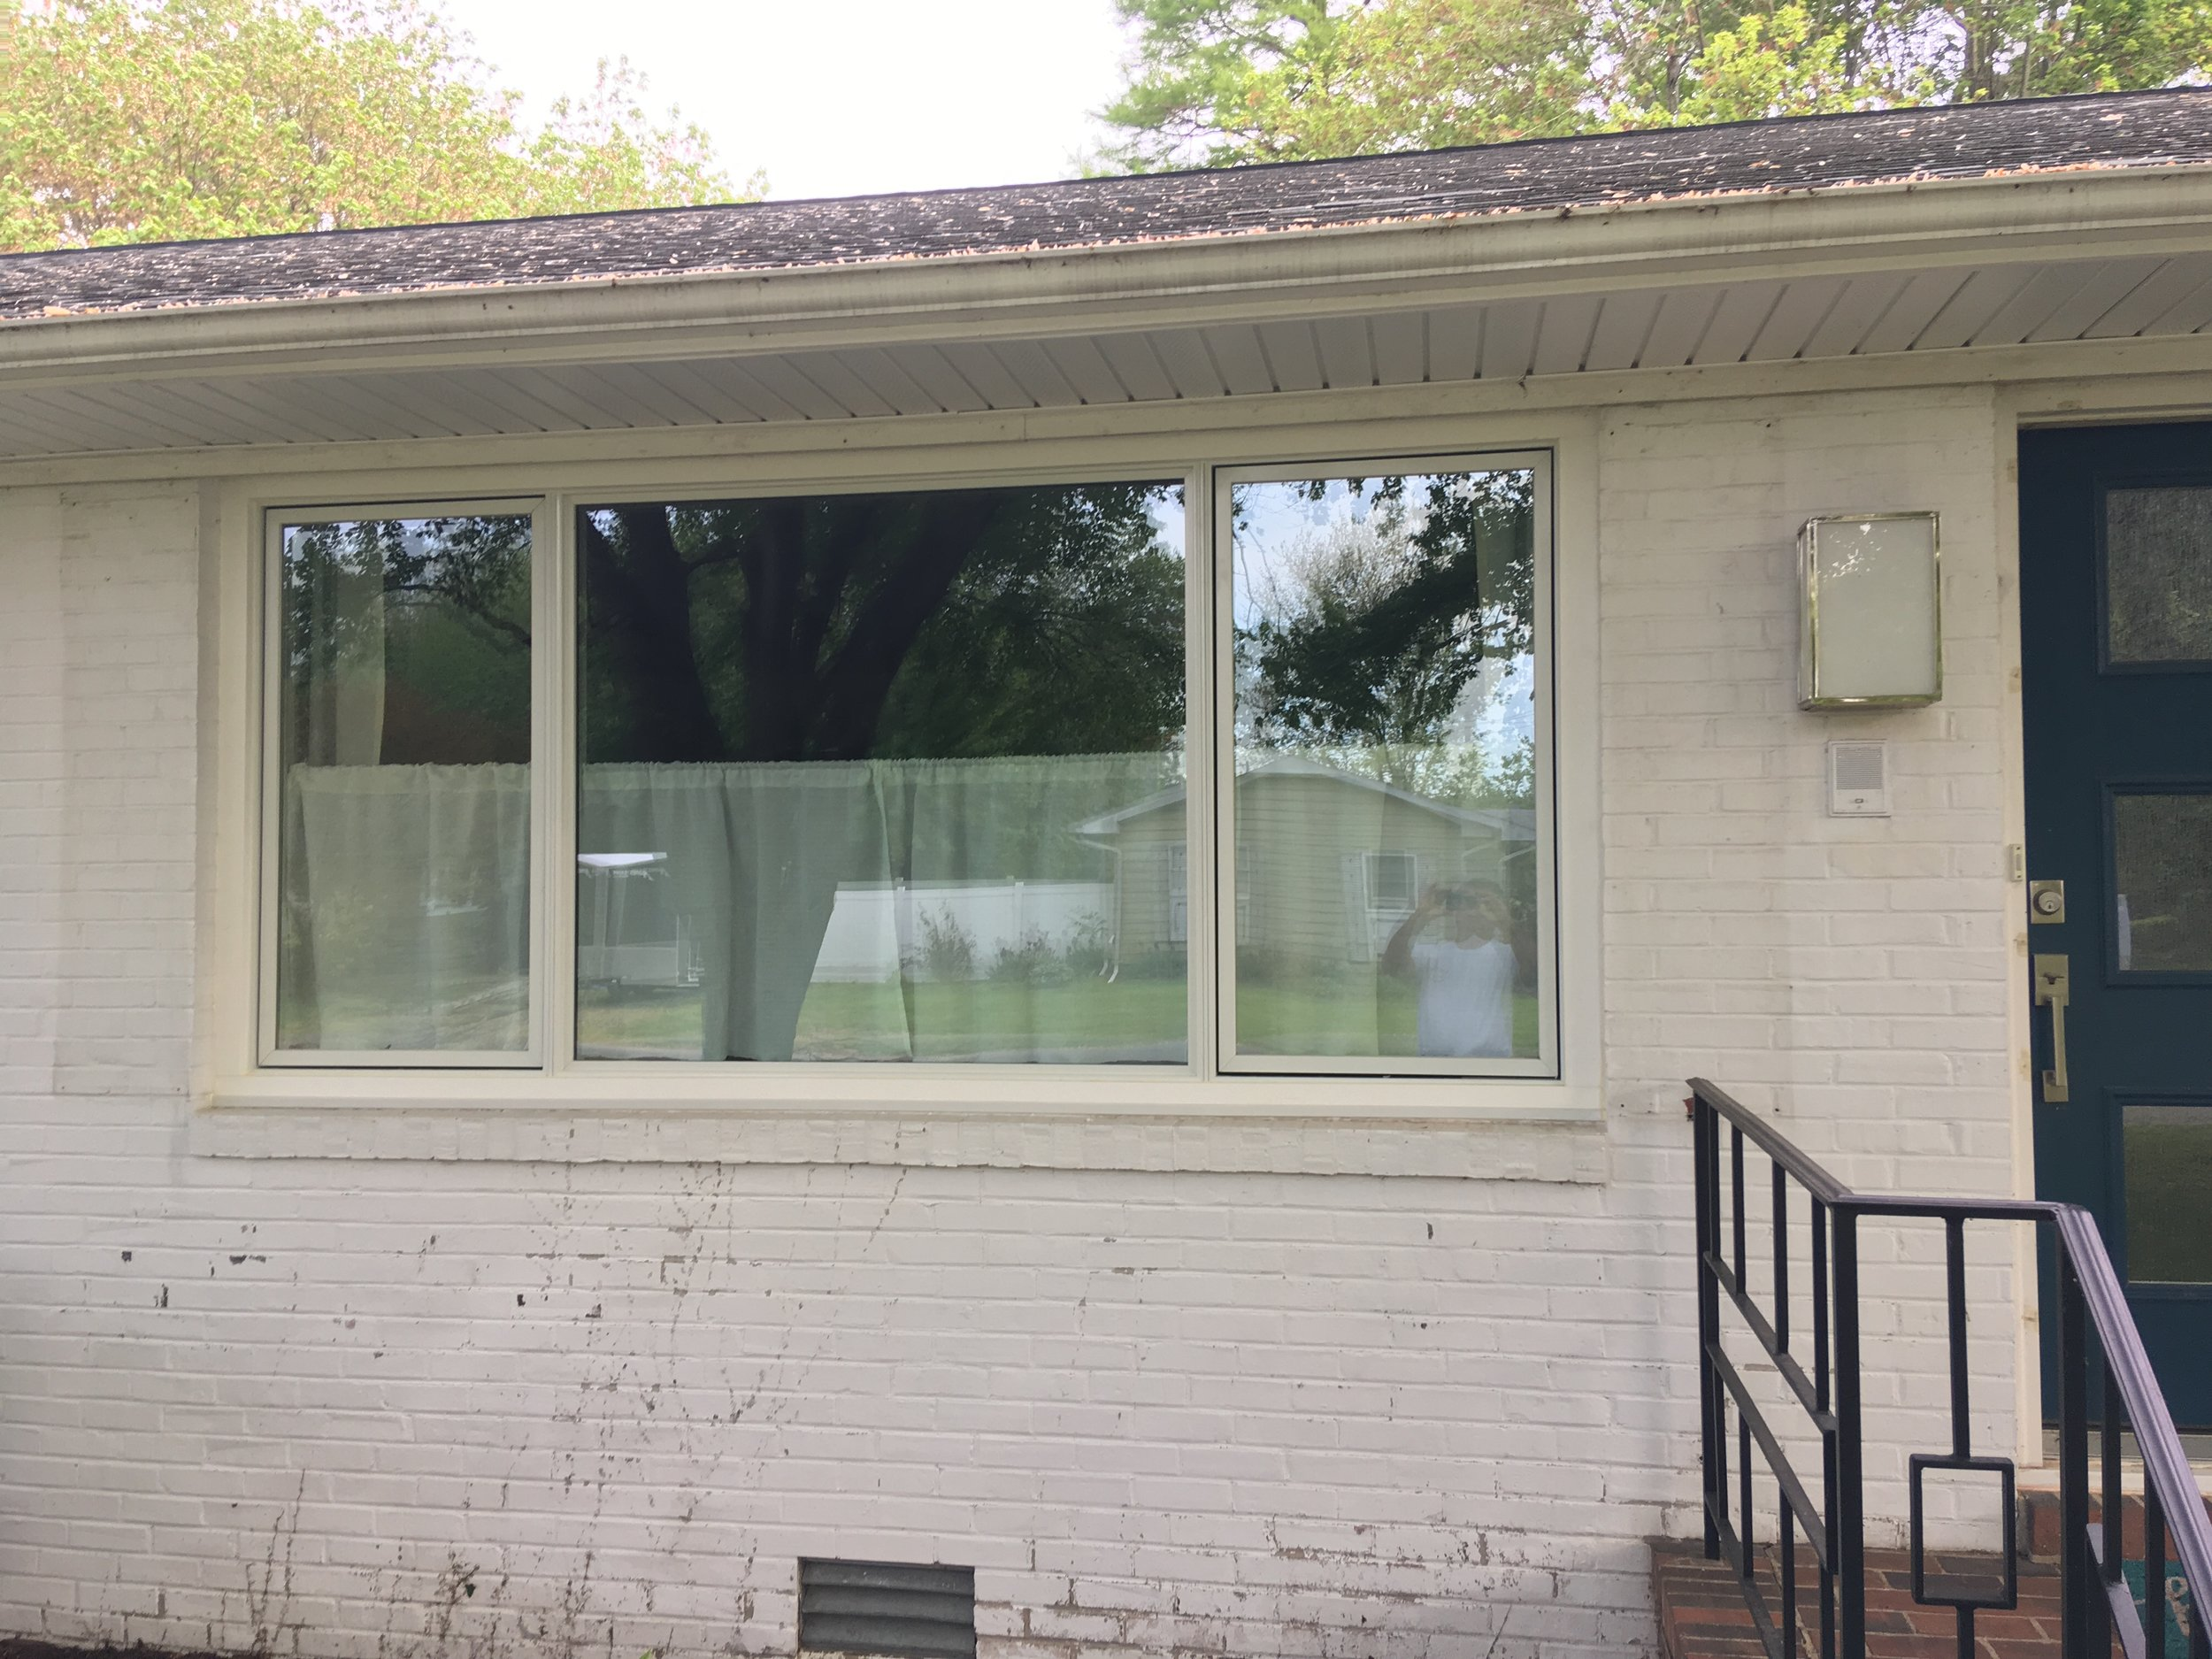 A new Pella replacement window with insulated Low E glass.